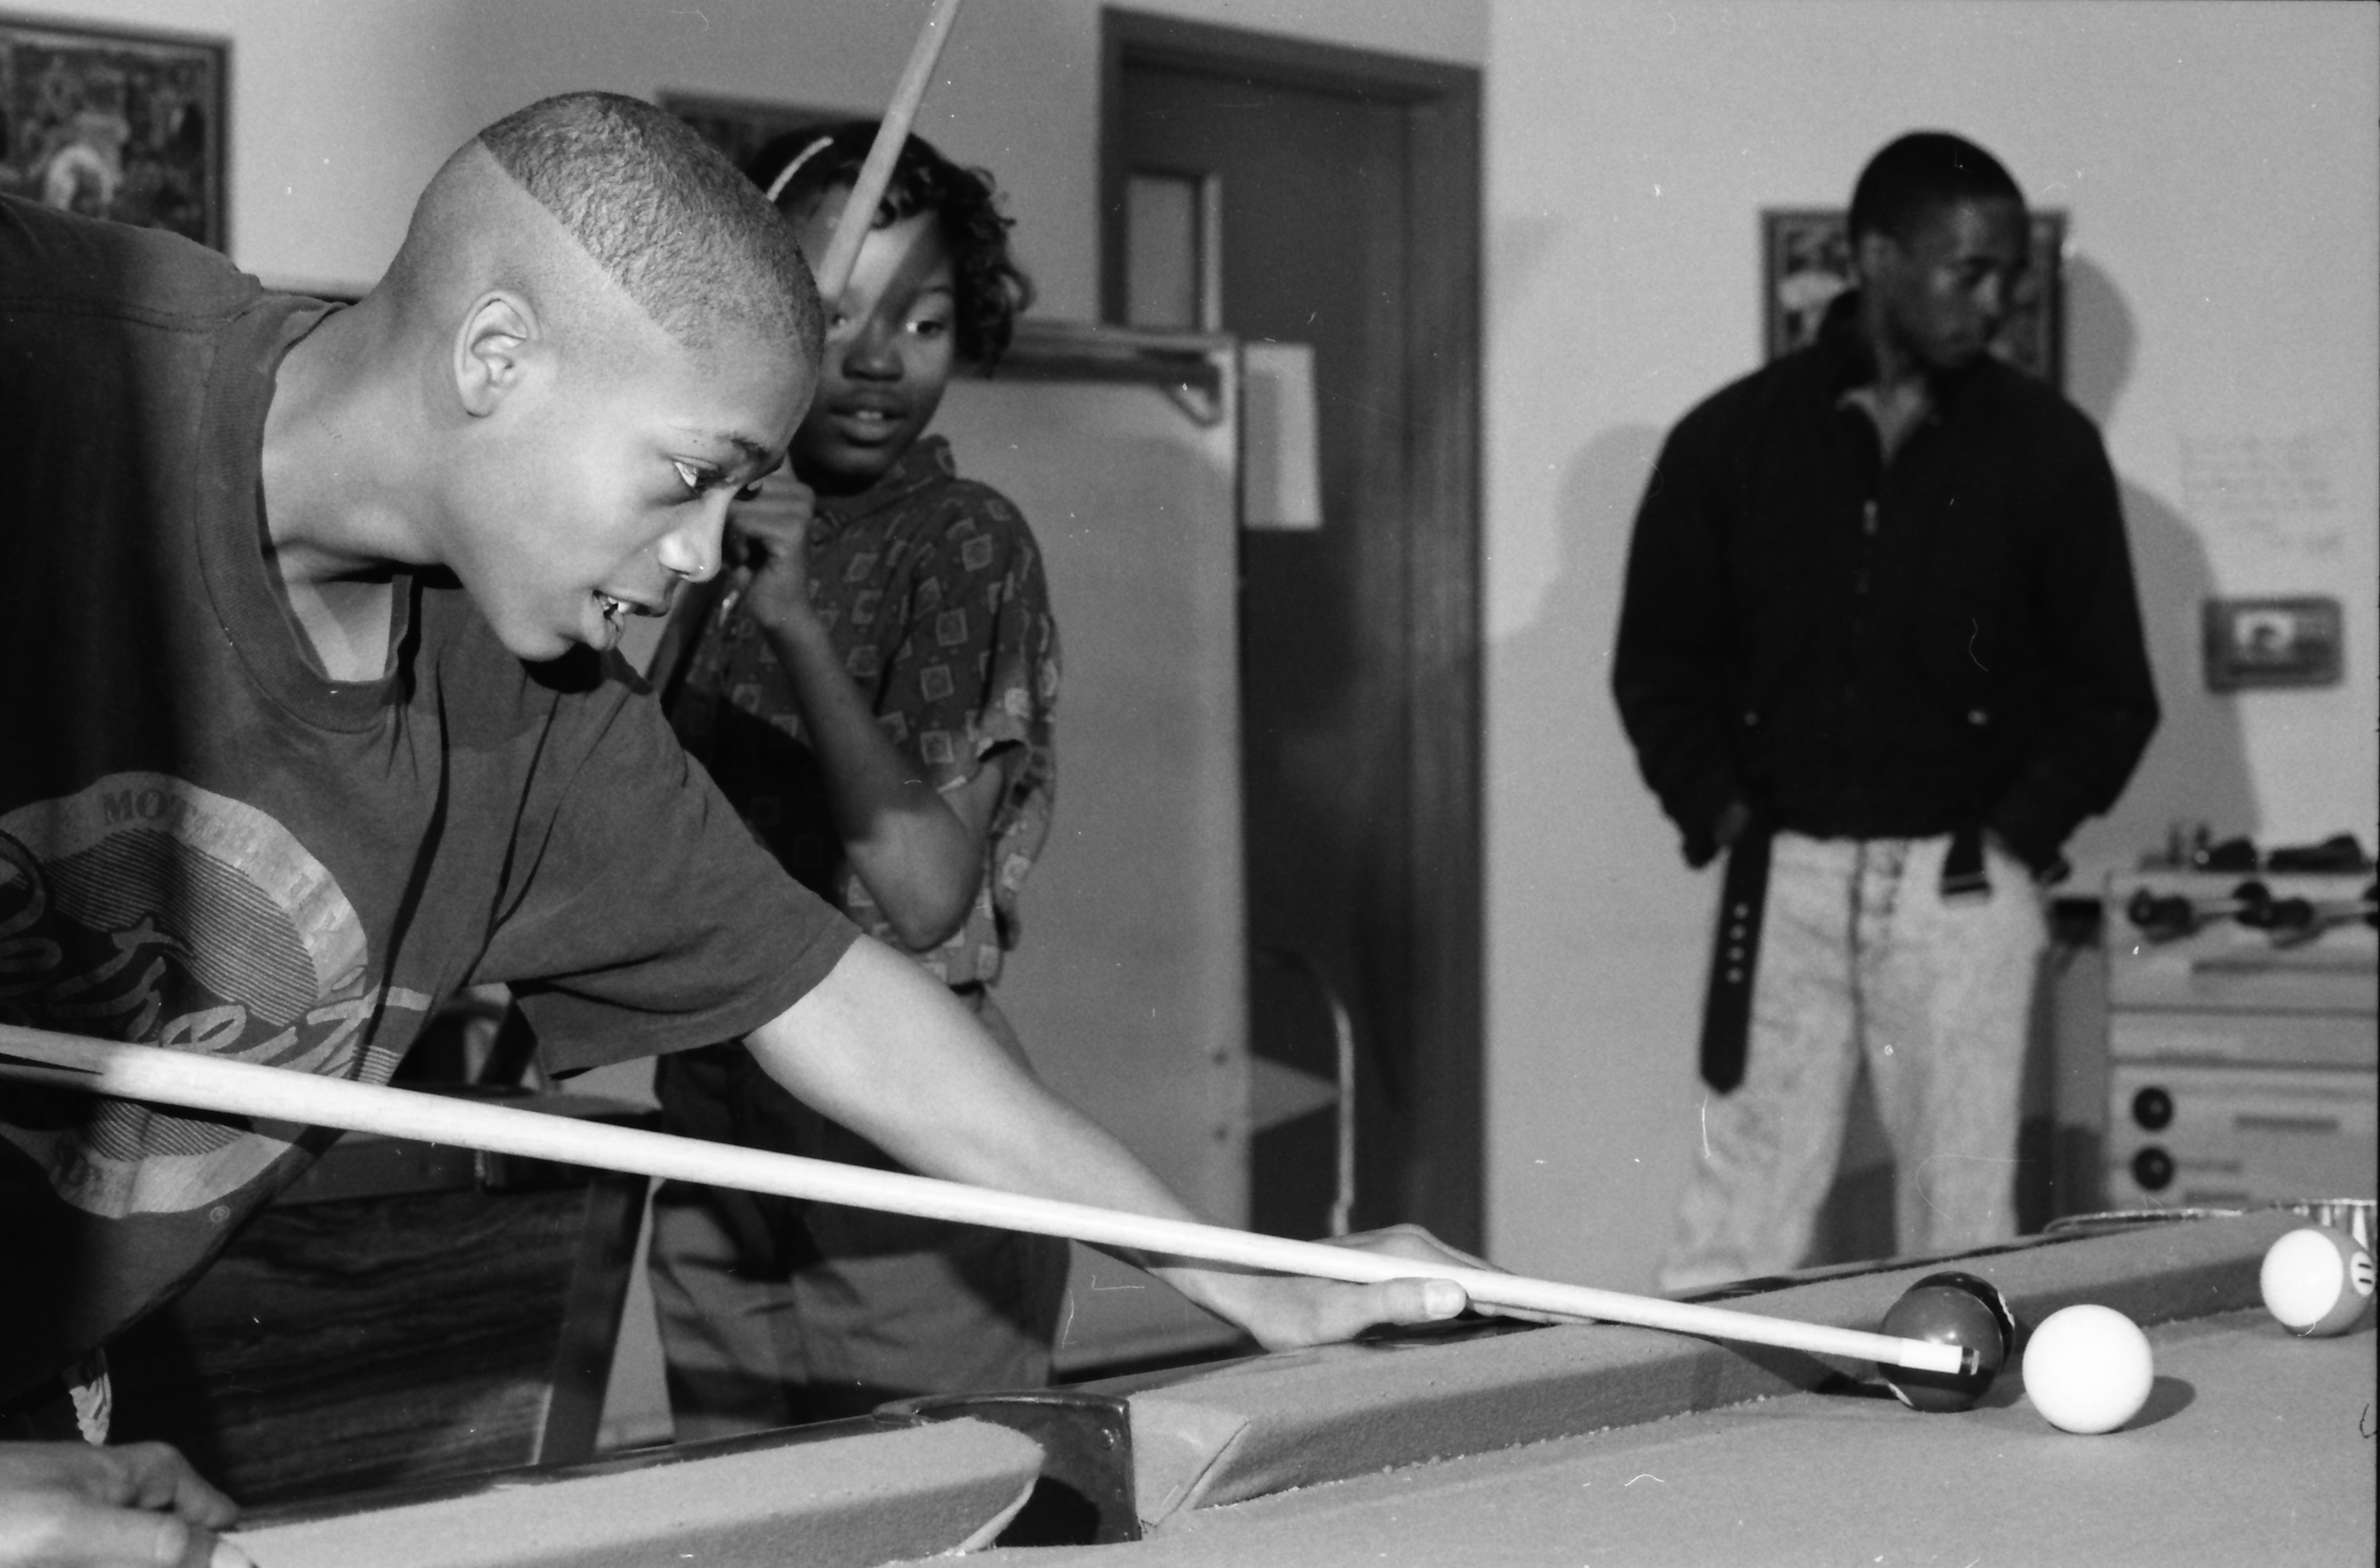 Playing Pool at Parkridge Community Center, April 1991 image